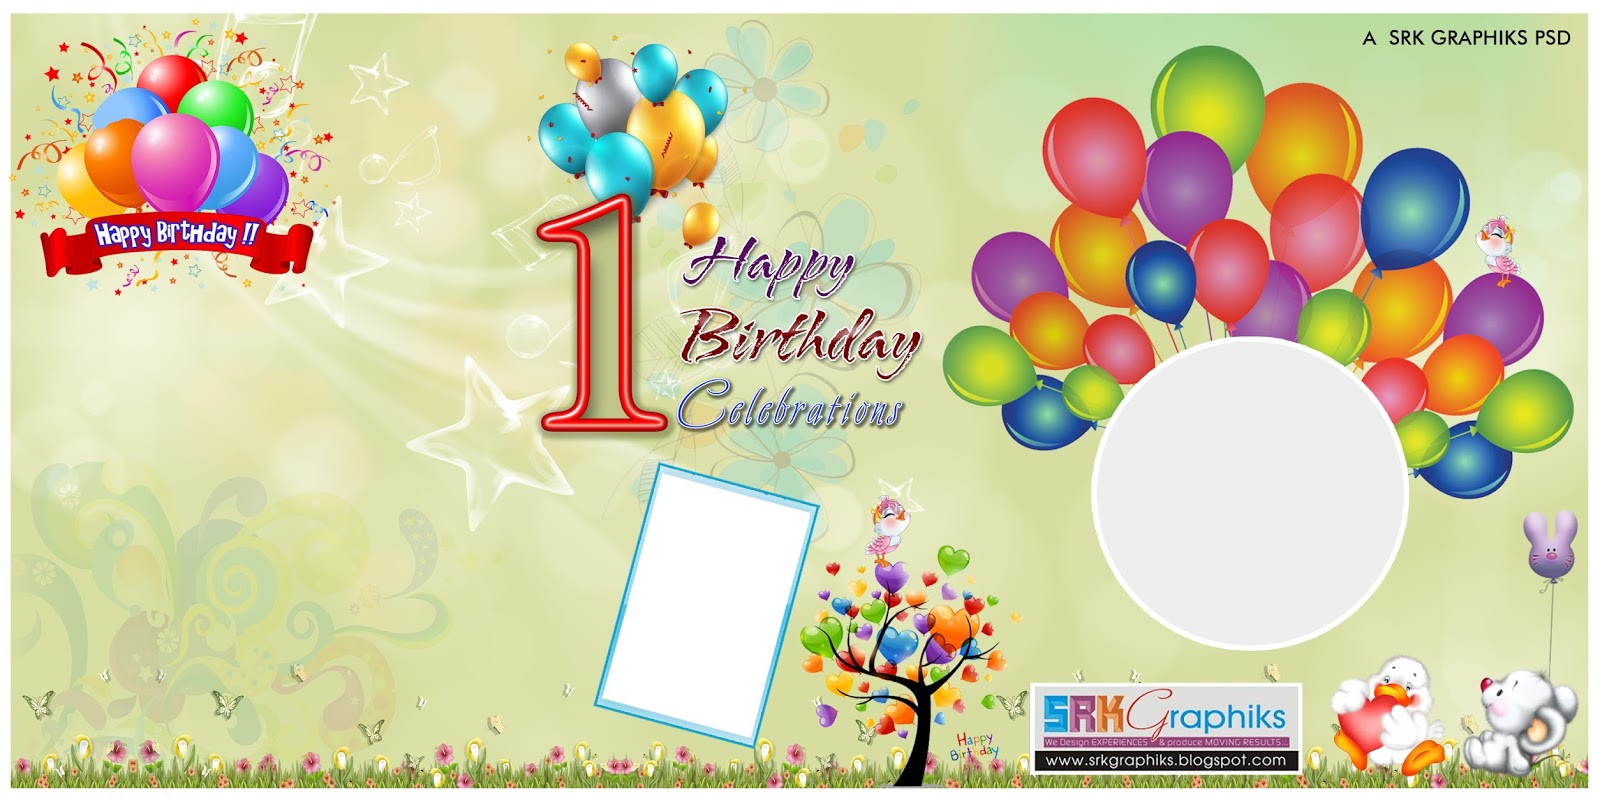 customize your own birthday banner ; birthday_banner_design_photoshop_template_for_free_9